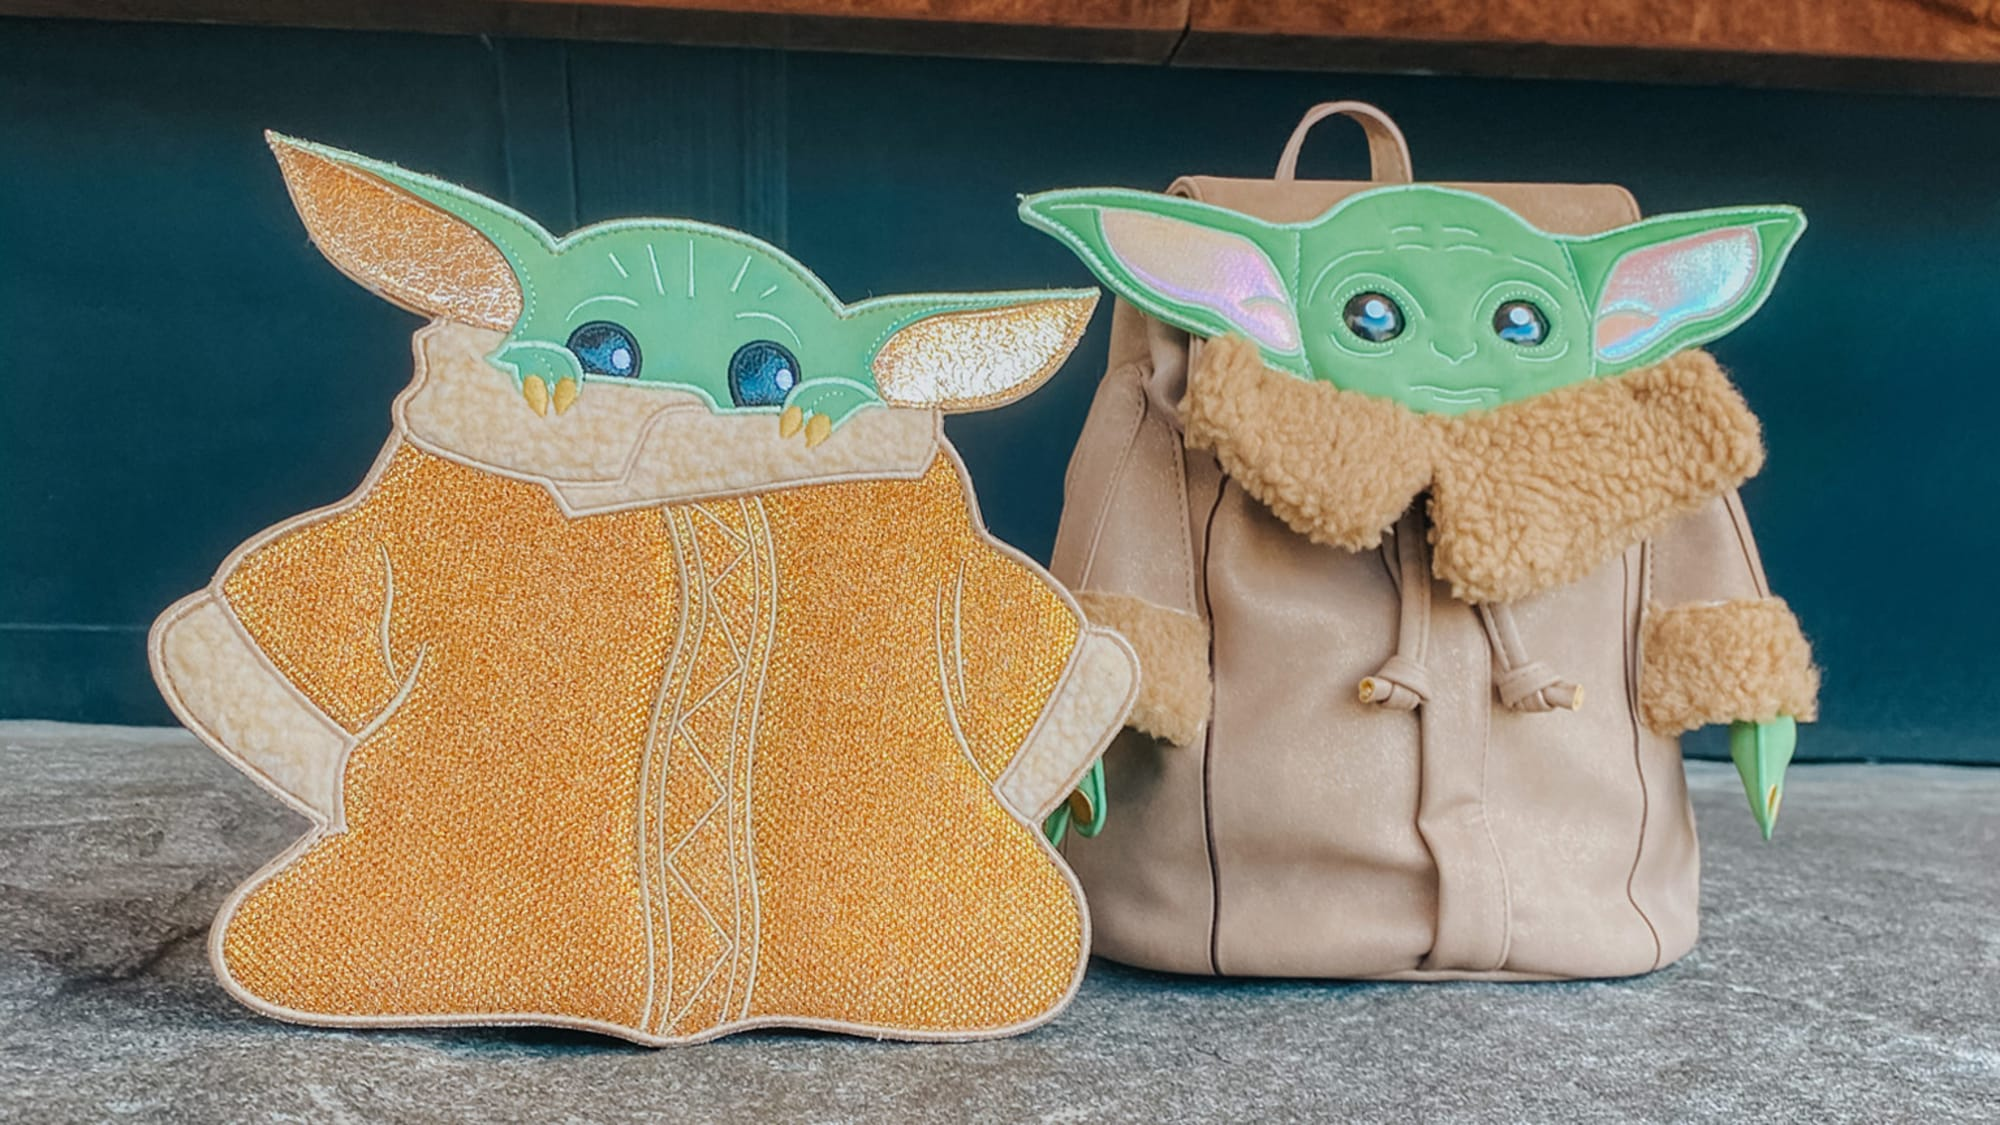 These Baby Yoda bags will have you channeling your inner Mandalorian